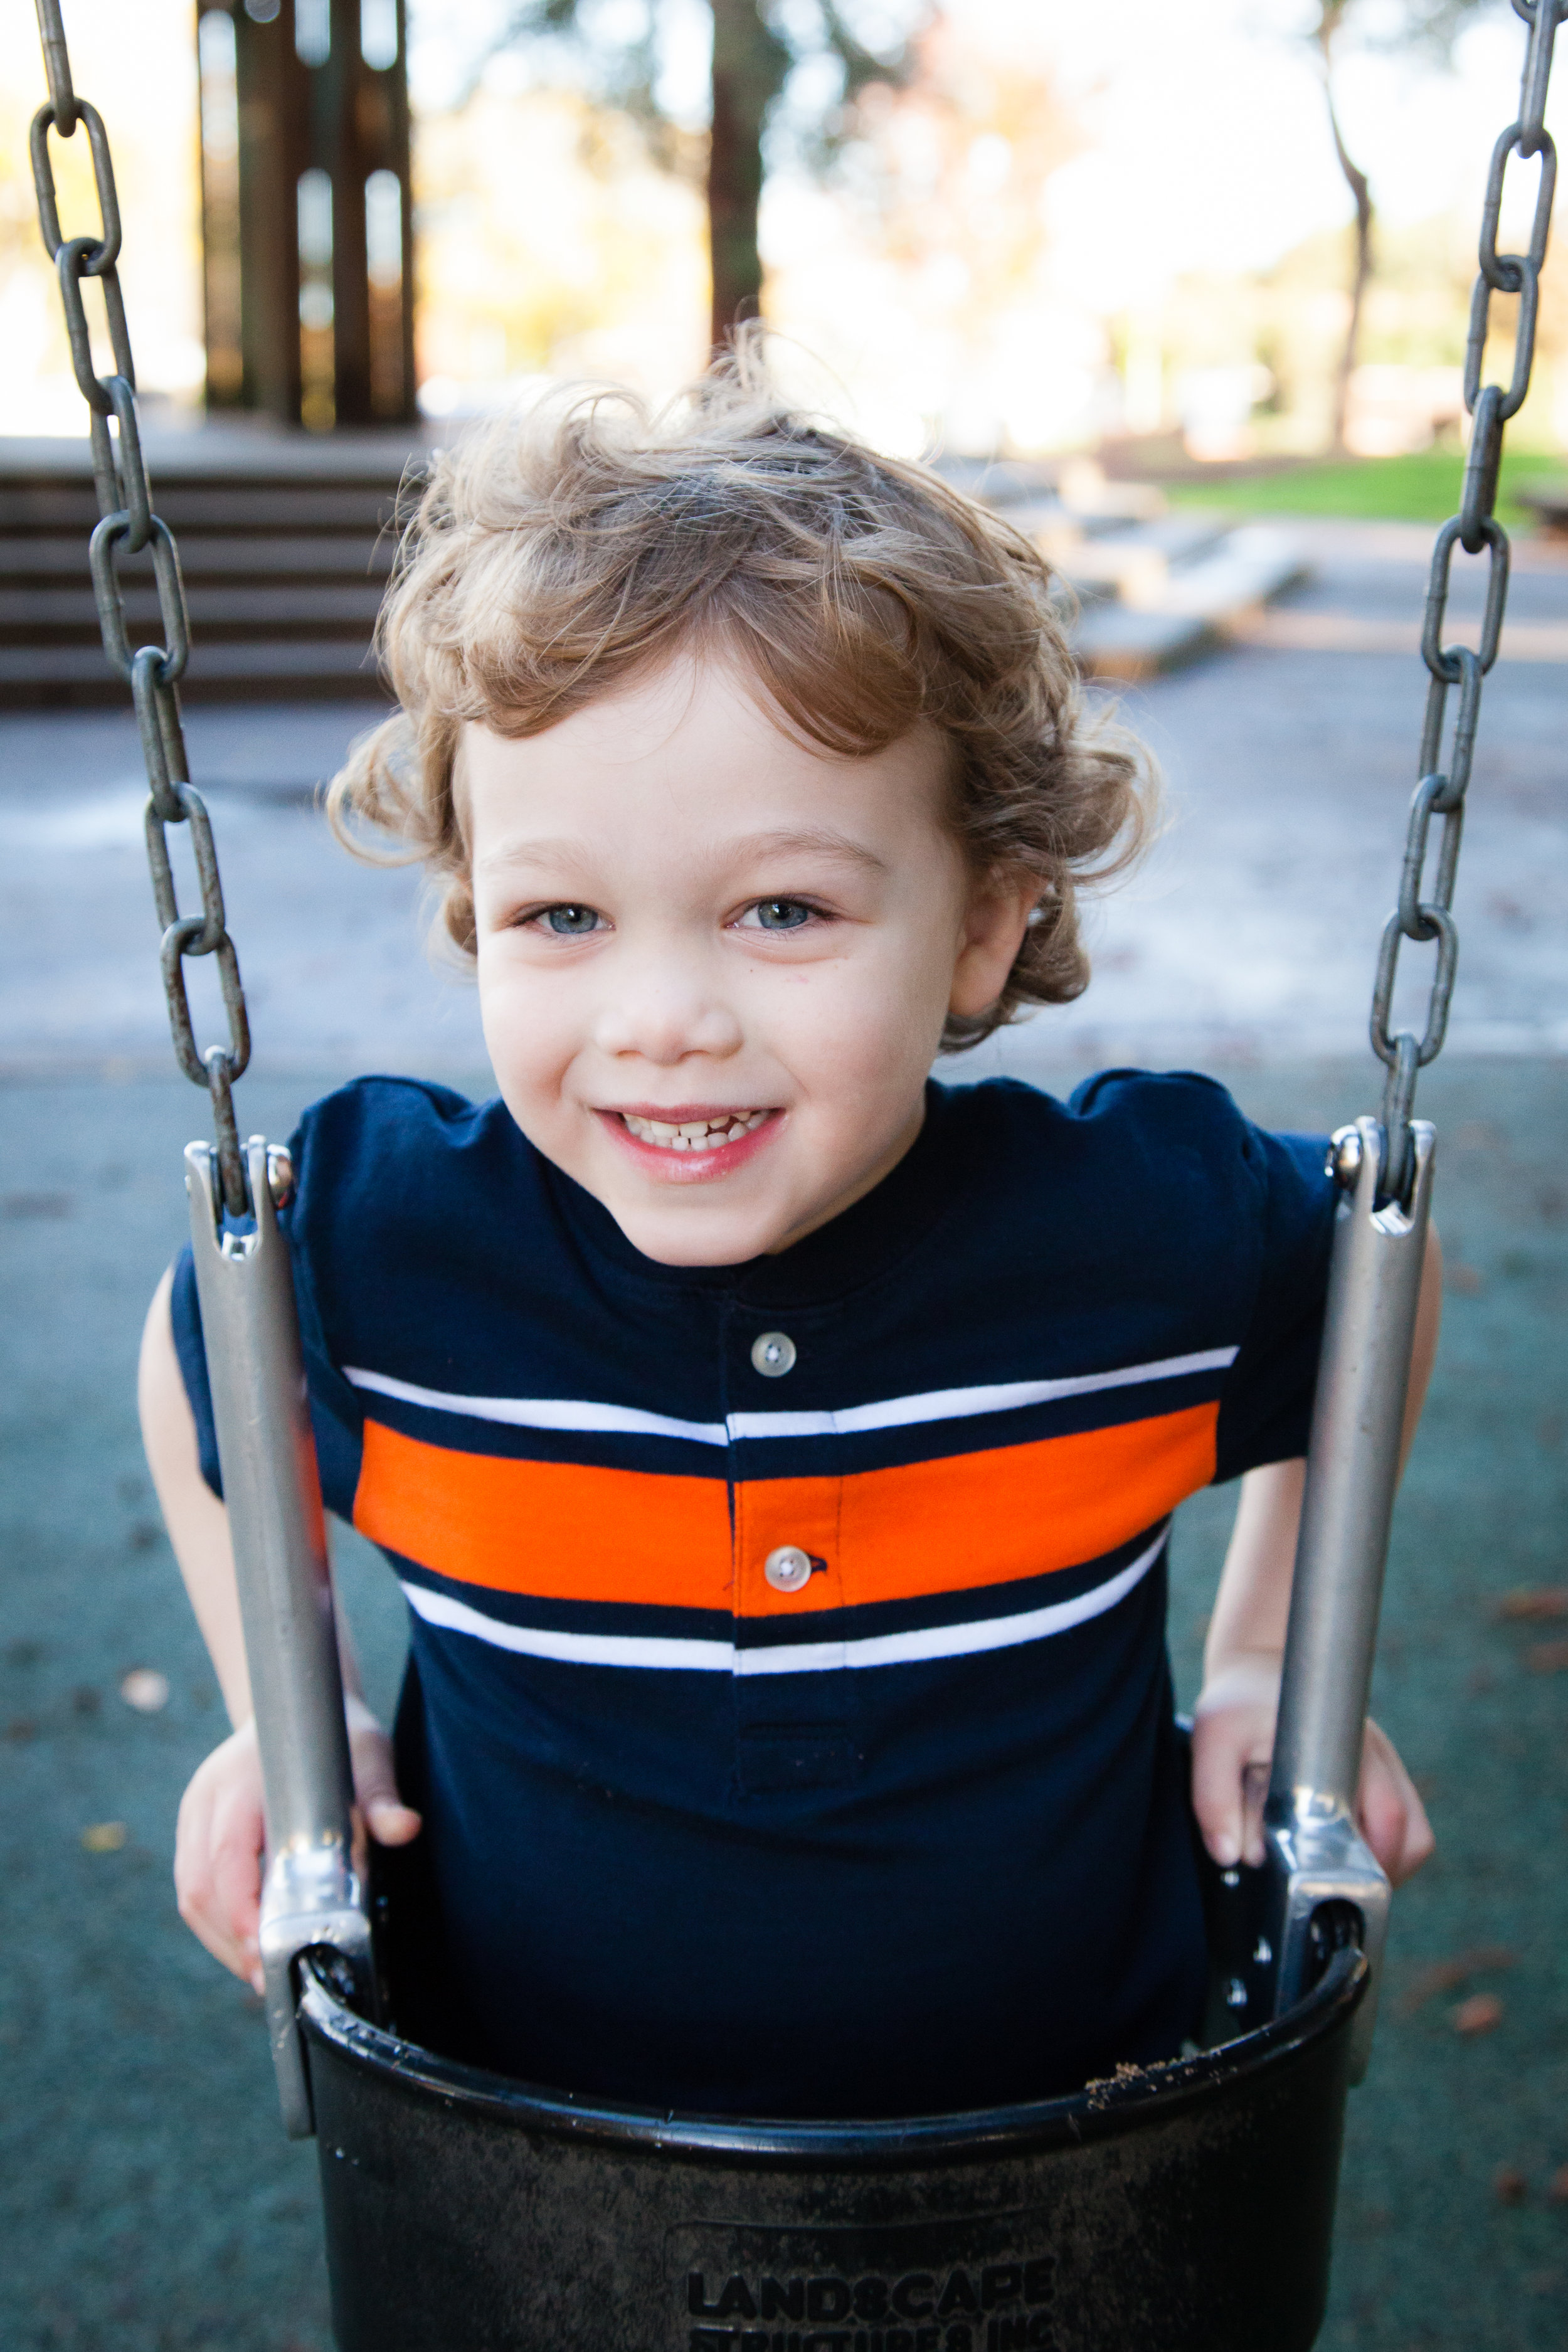 Nothing like a swing to get a kid (or an adult) to smile!